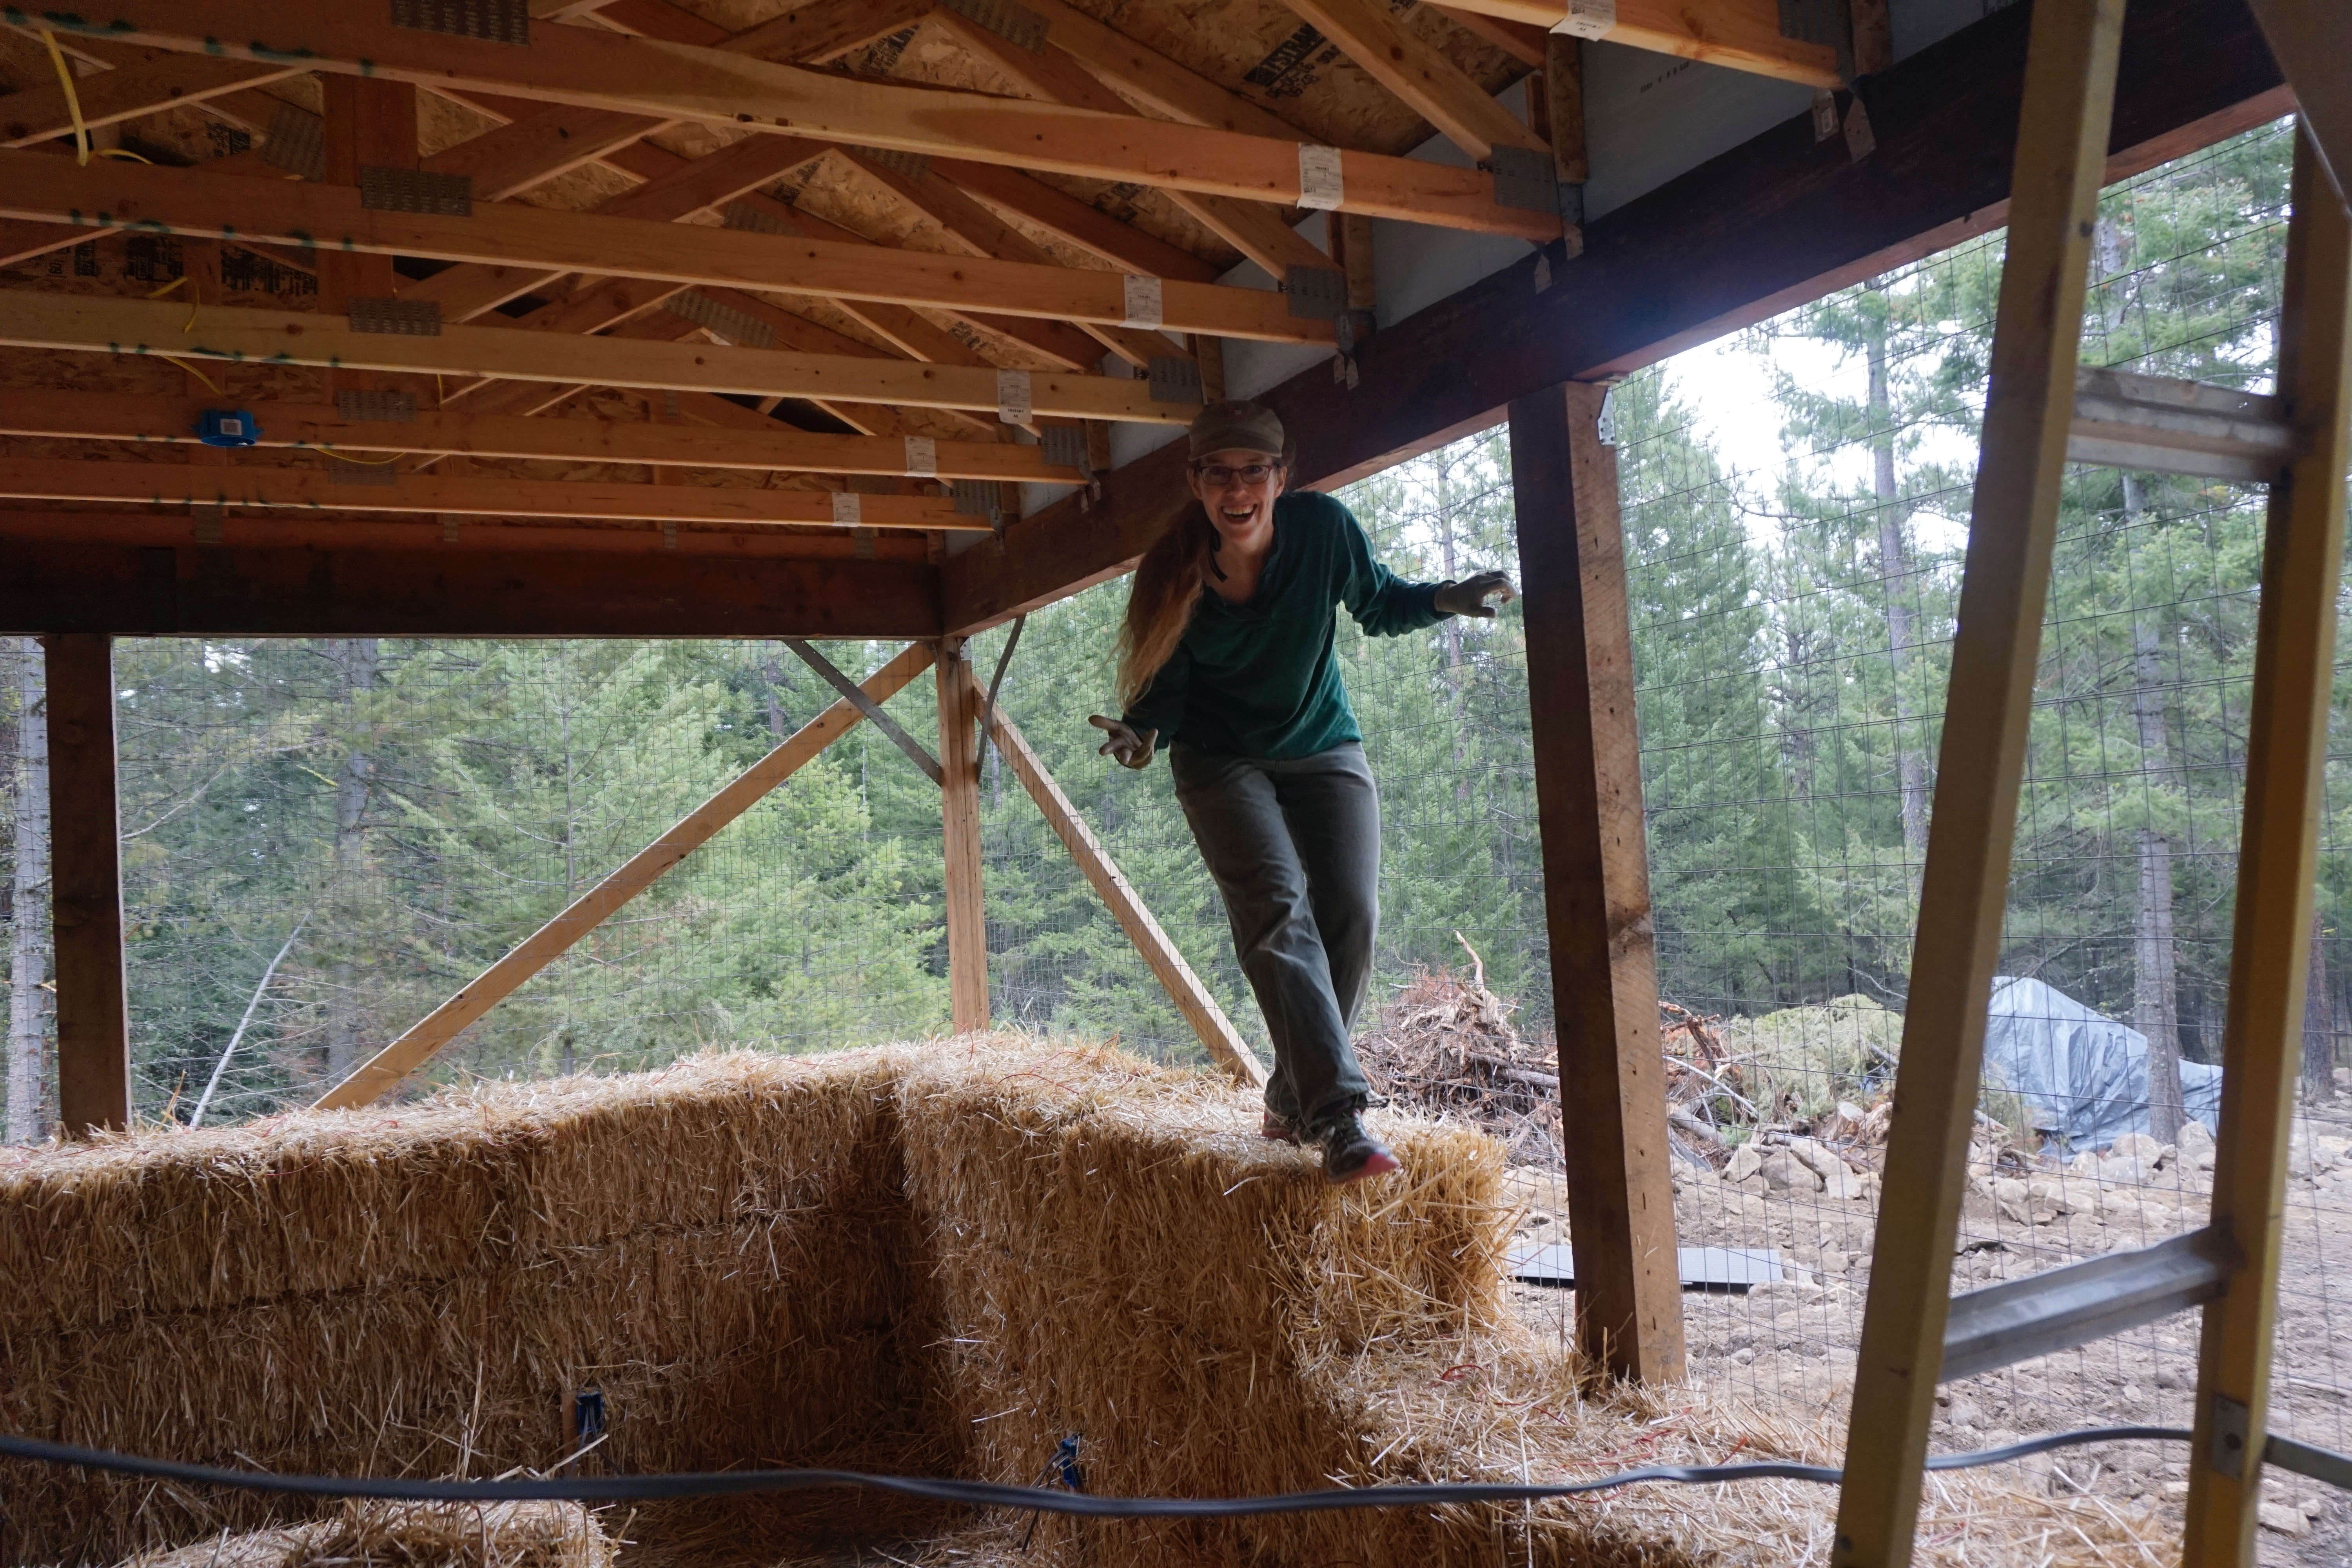 Having fun climbing the bales at a straw bale workshop with Walt Redfield in Fall 2016.